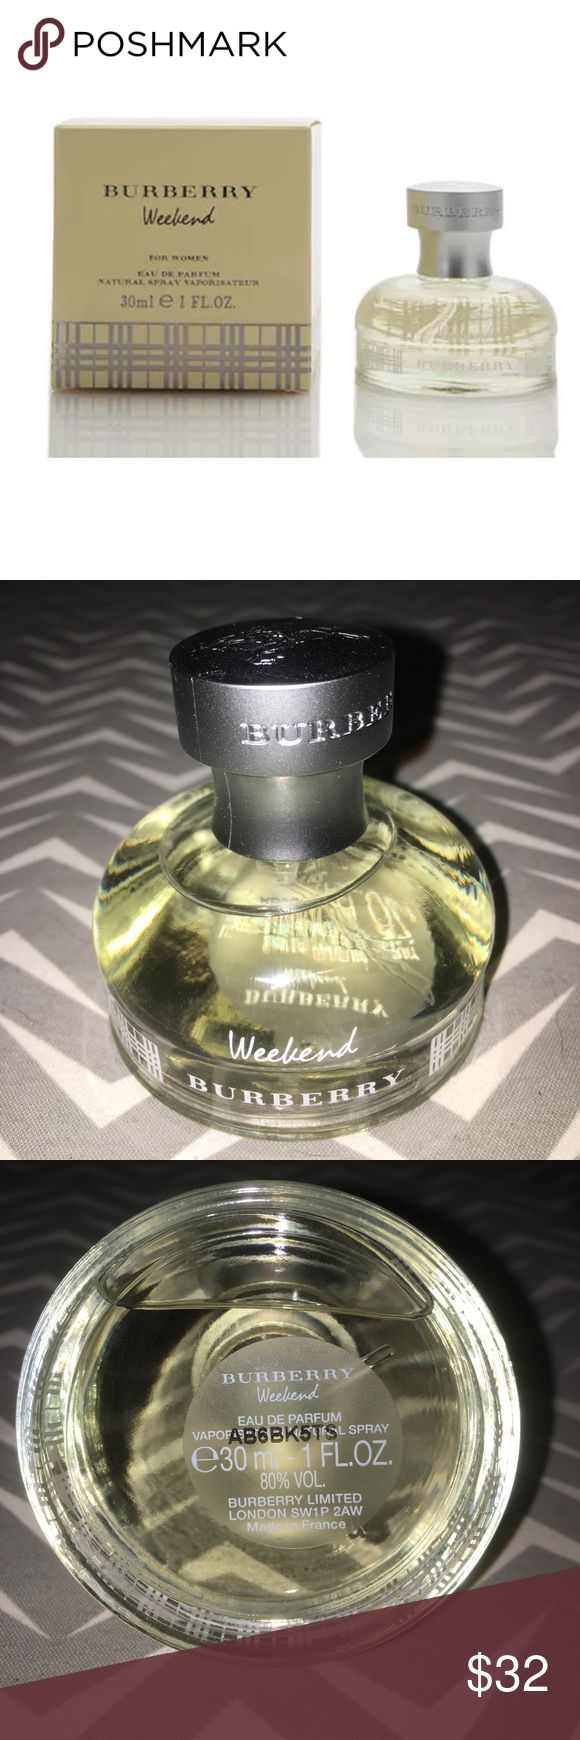 Burberry Weekend Eau De Parfum Spray Burberry Weekend Eau De Parfum Spray 30ml/1oz  A floral fragrance with fresh, sparkling notes It consists the clear, luminous essence of citrus With a rich floral heart & a musky & woodsy base  ❤️sorry does not come with box. Burberry Other